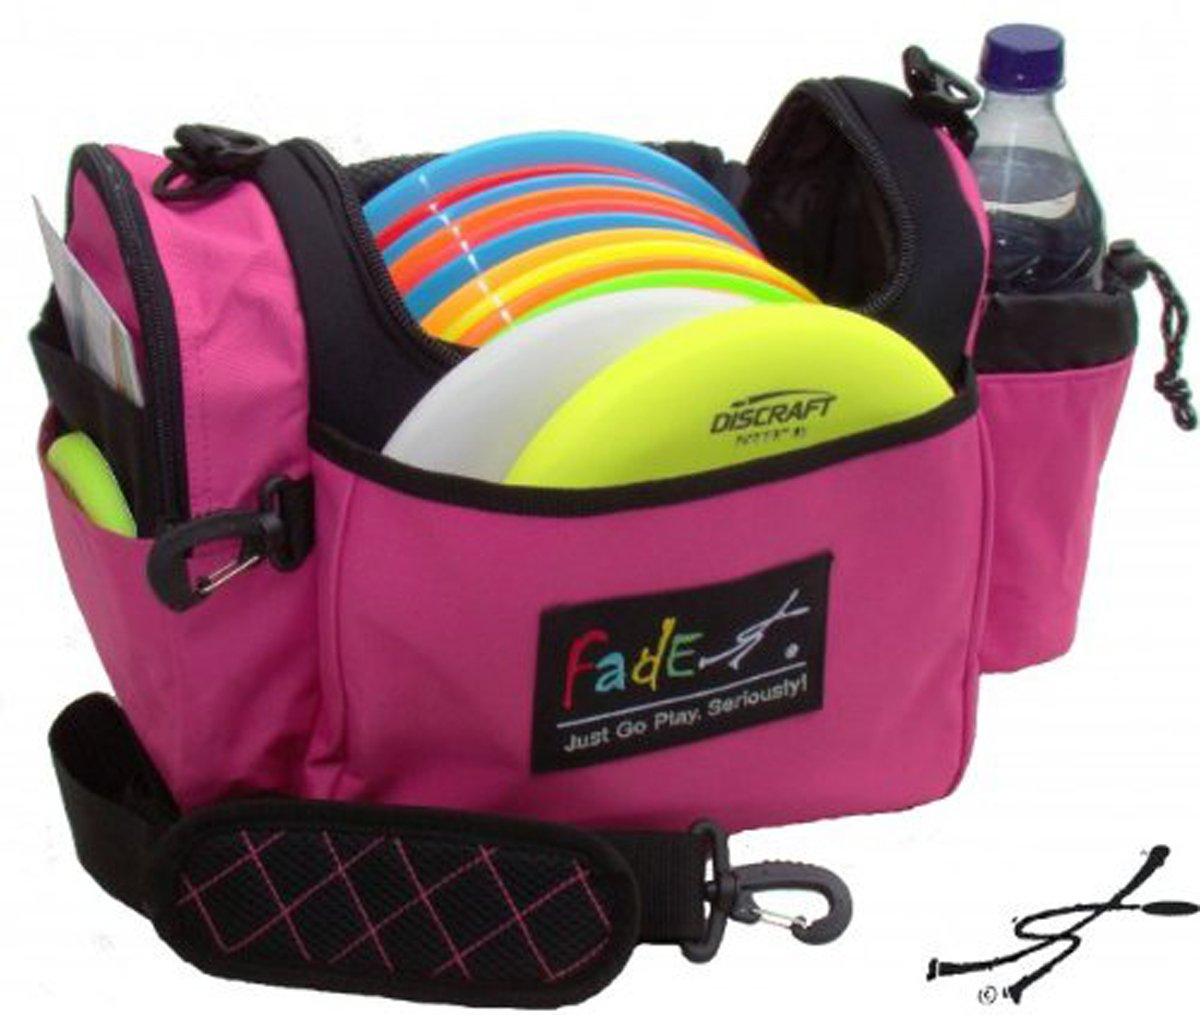 Best Rated in Disc Golf Bags   Helpful Customer Reviews - Amazon.com 09ce0517b835b